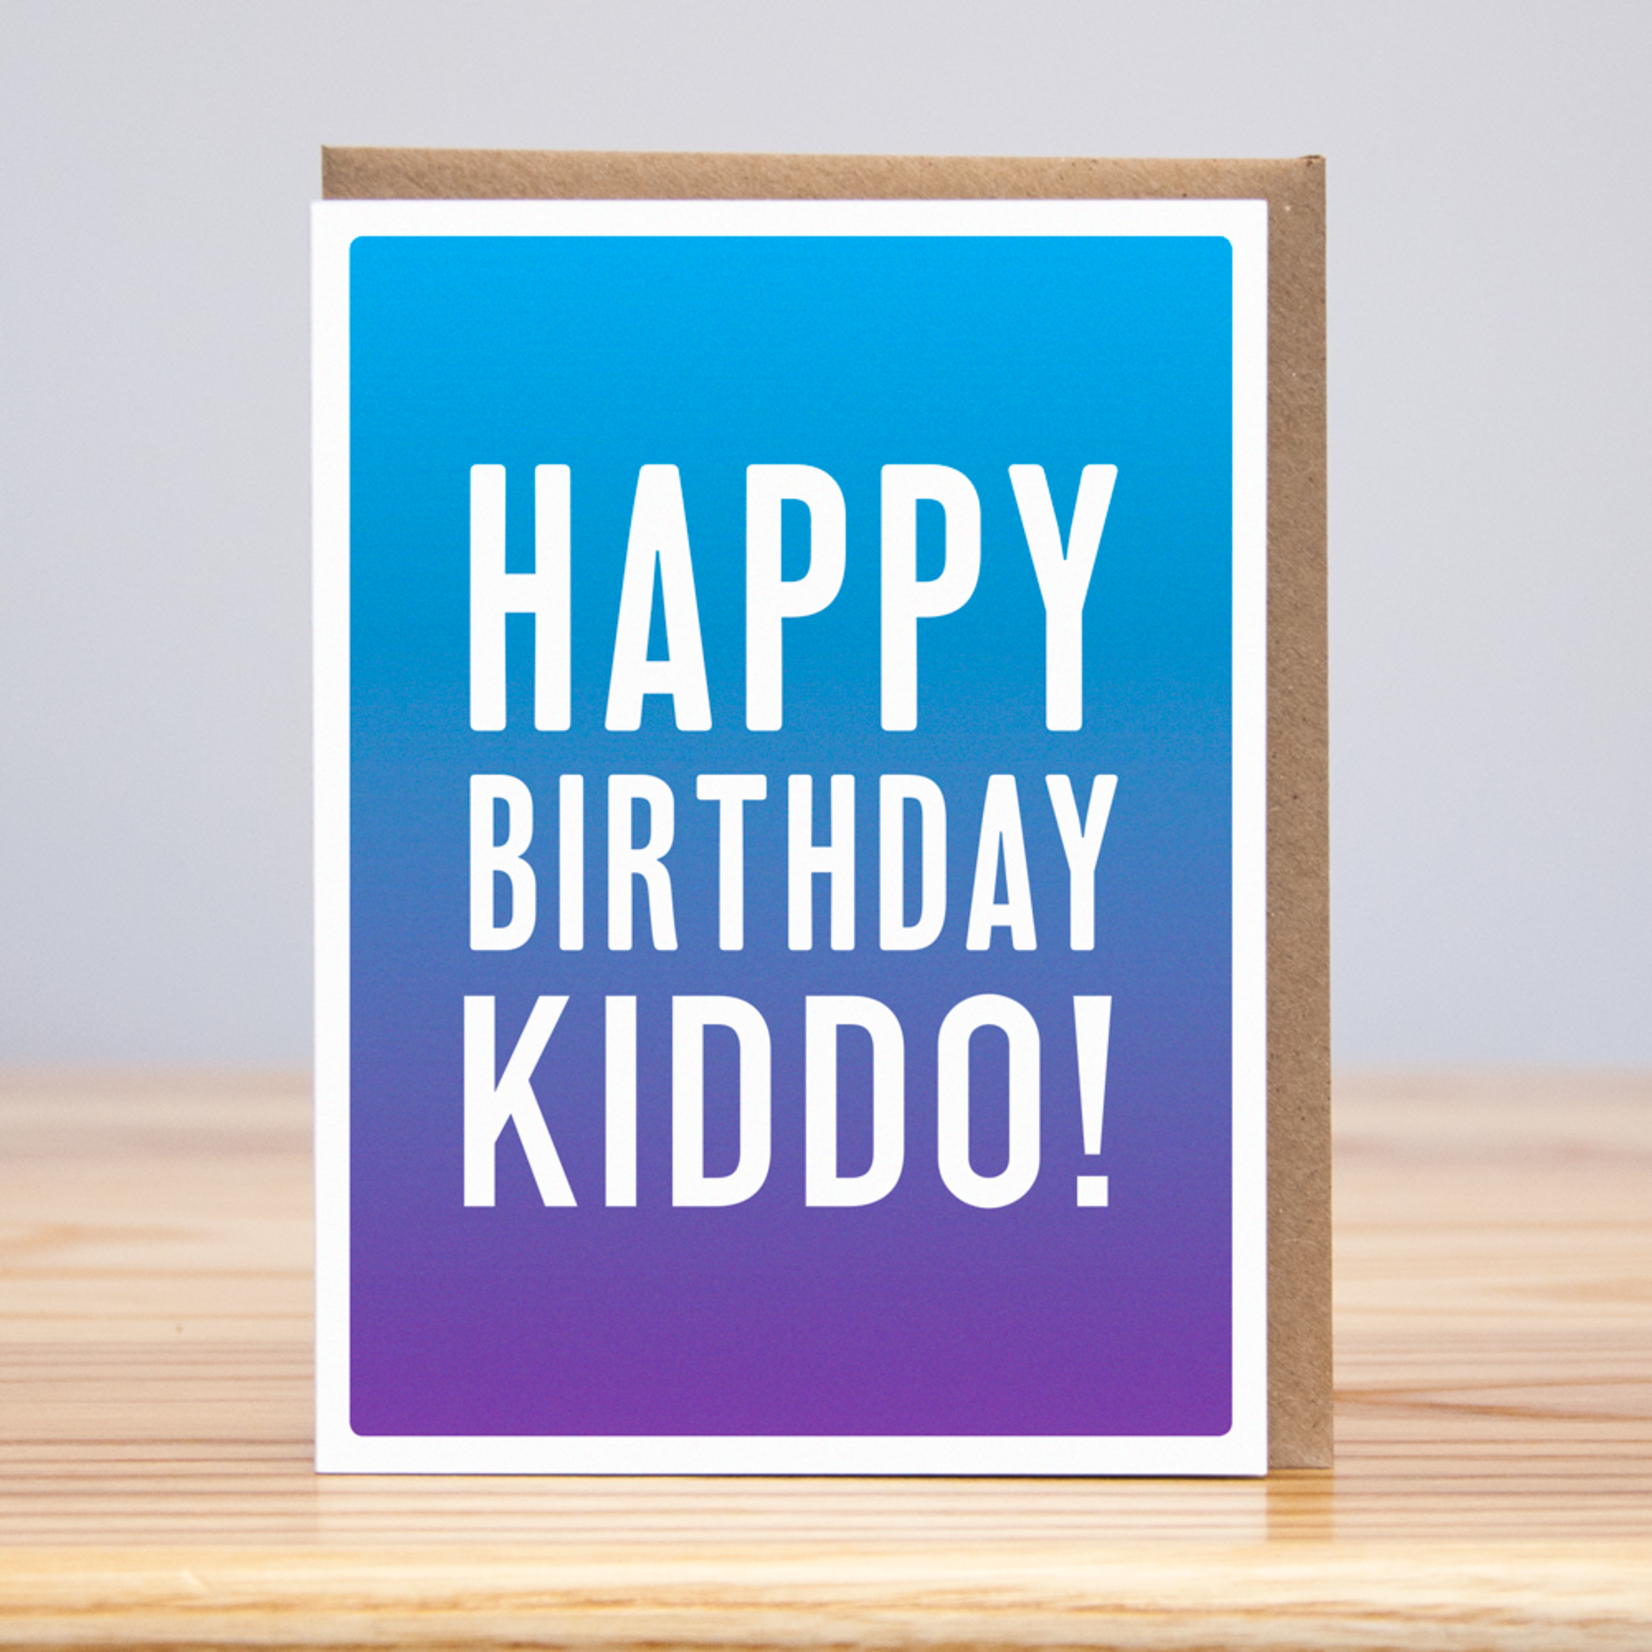 Huckleberry Huckleberry Birthday Ombre Kiddo